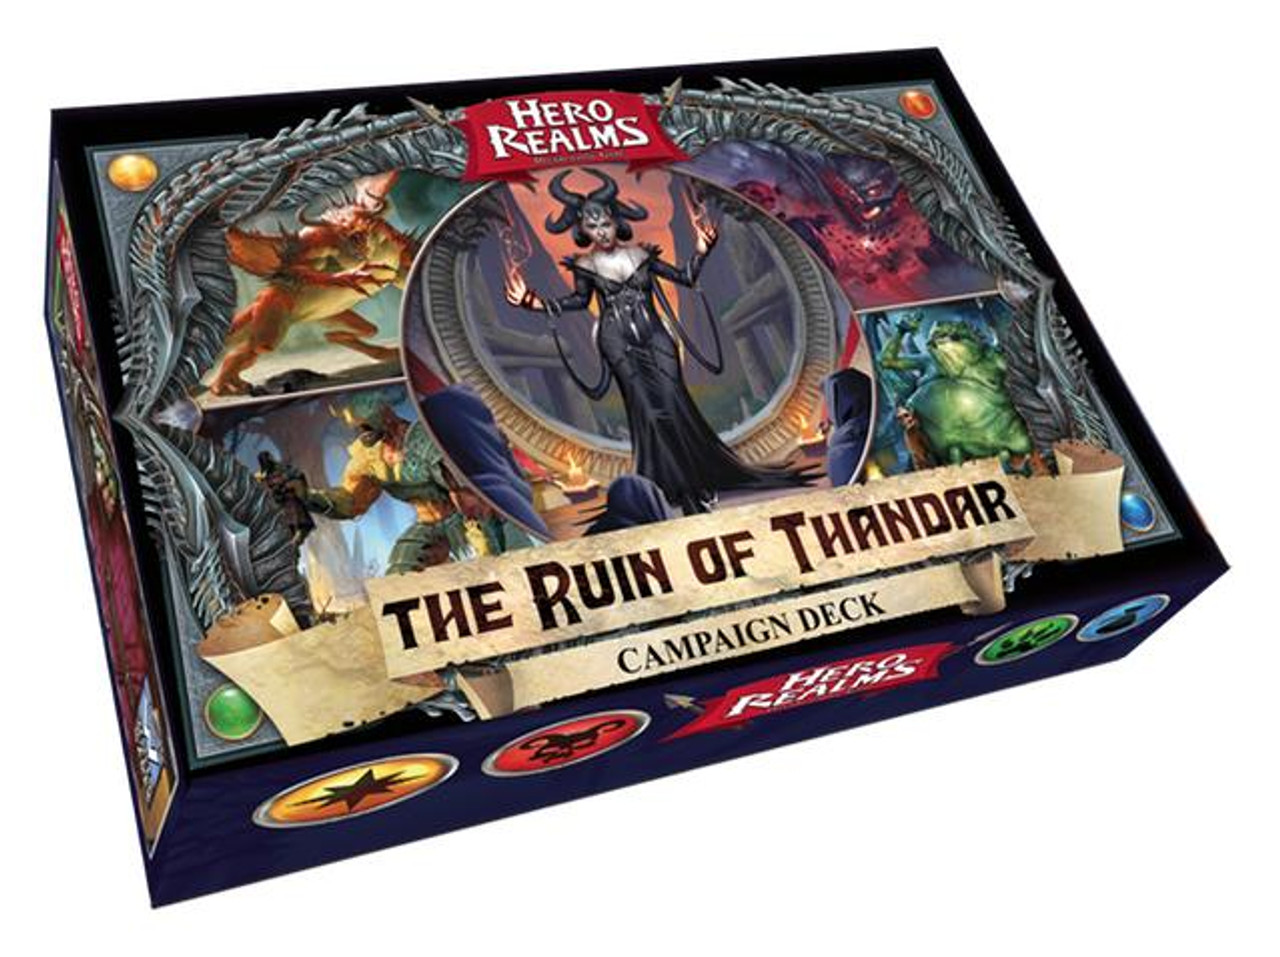 White Wizard Games Hero Realms - The Ruin Of Thandar